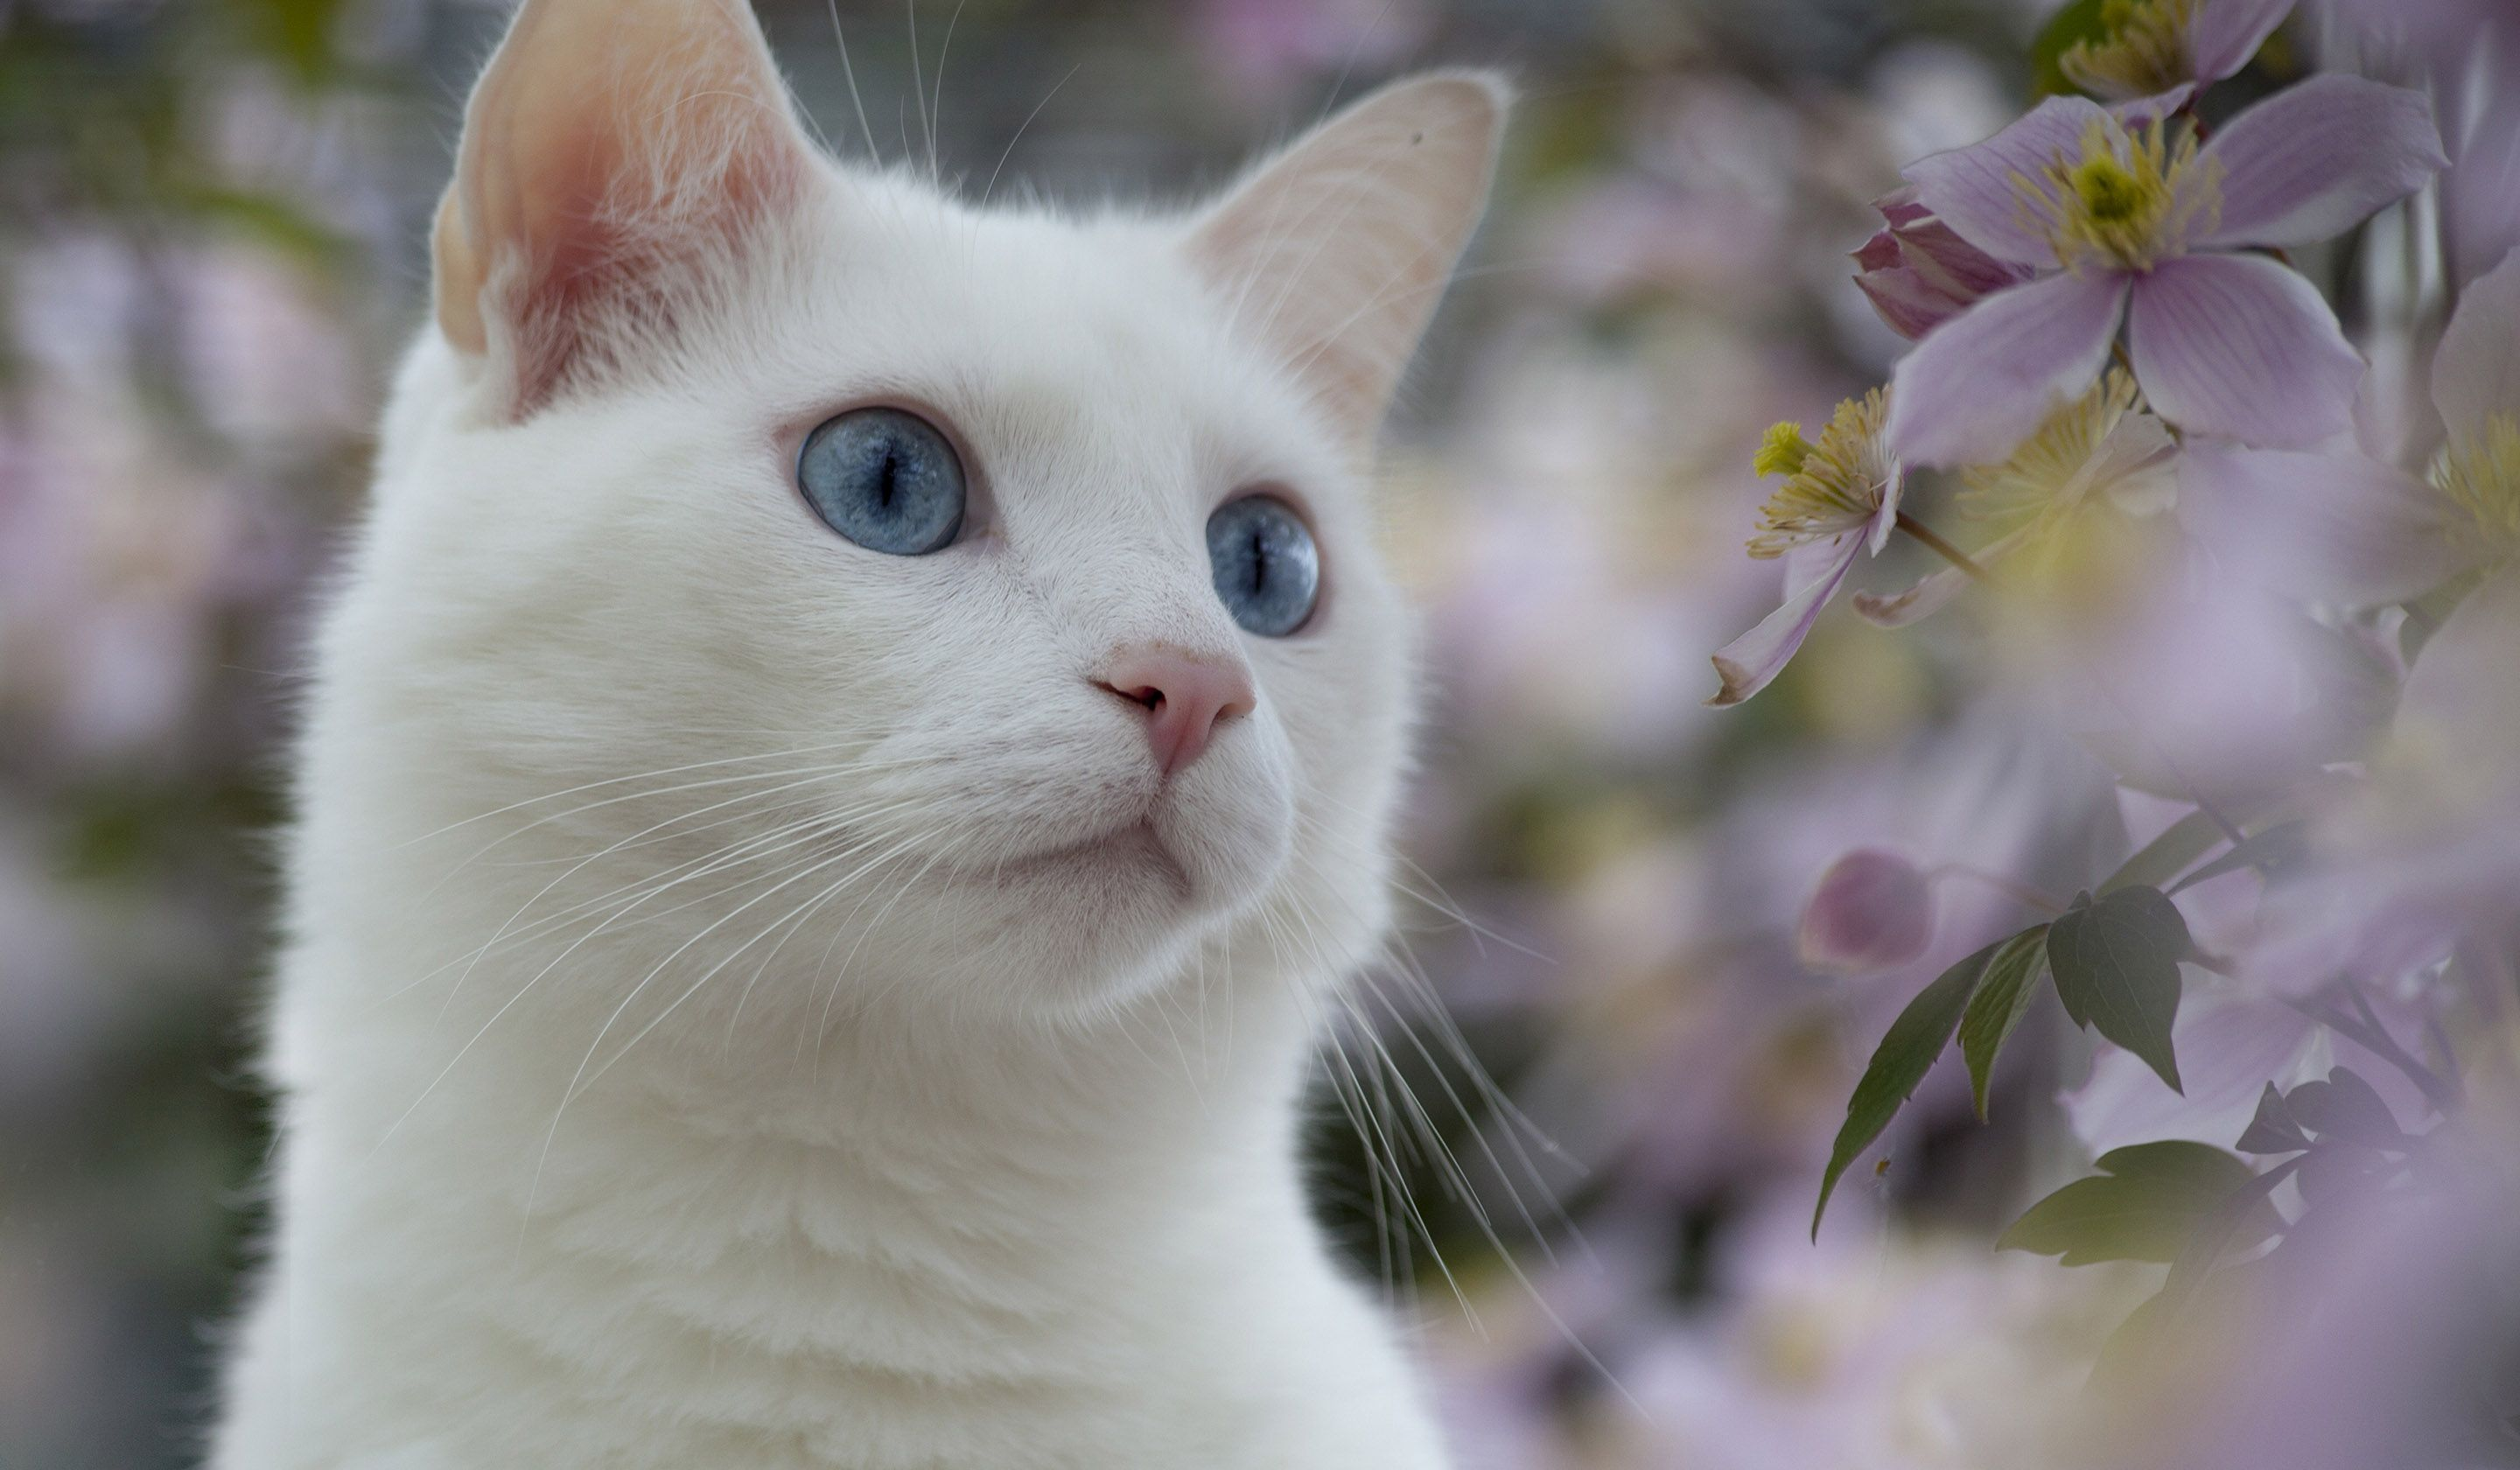 White Cat With Blue Eyes Wallpaper - Cats Wallpapers and Backgrounds